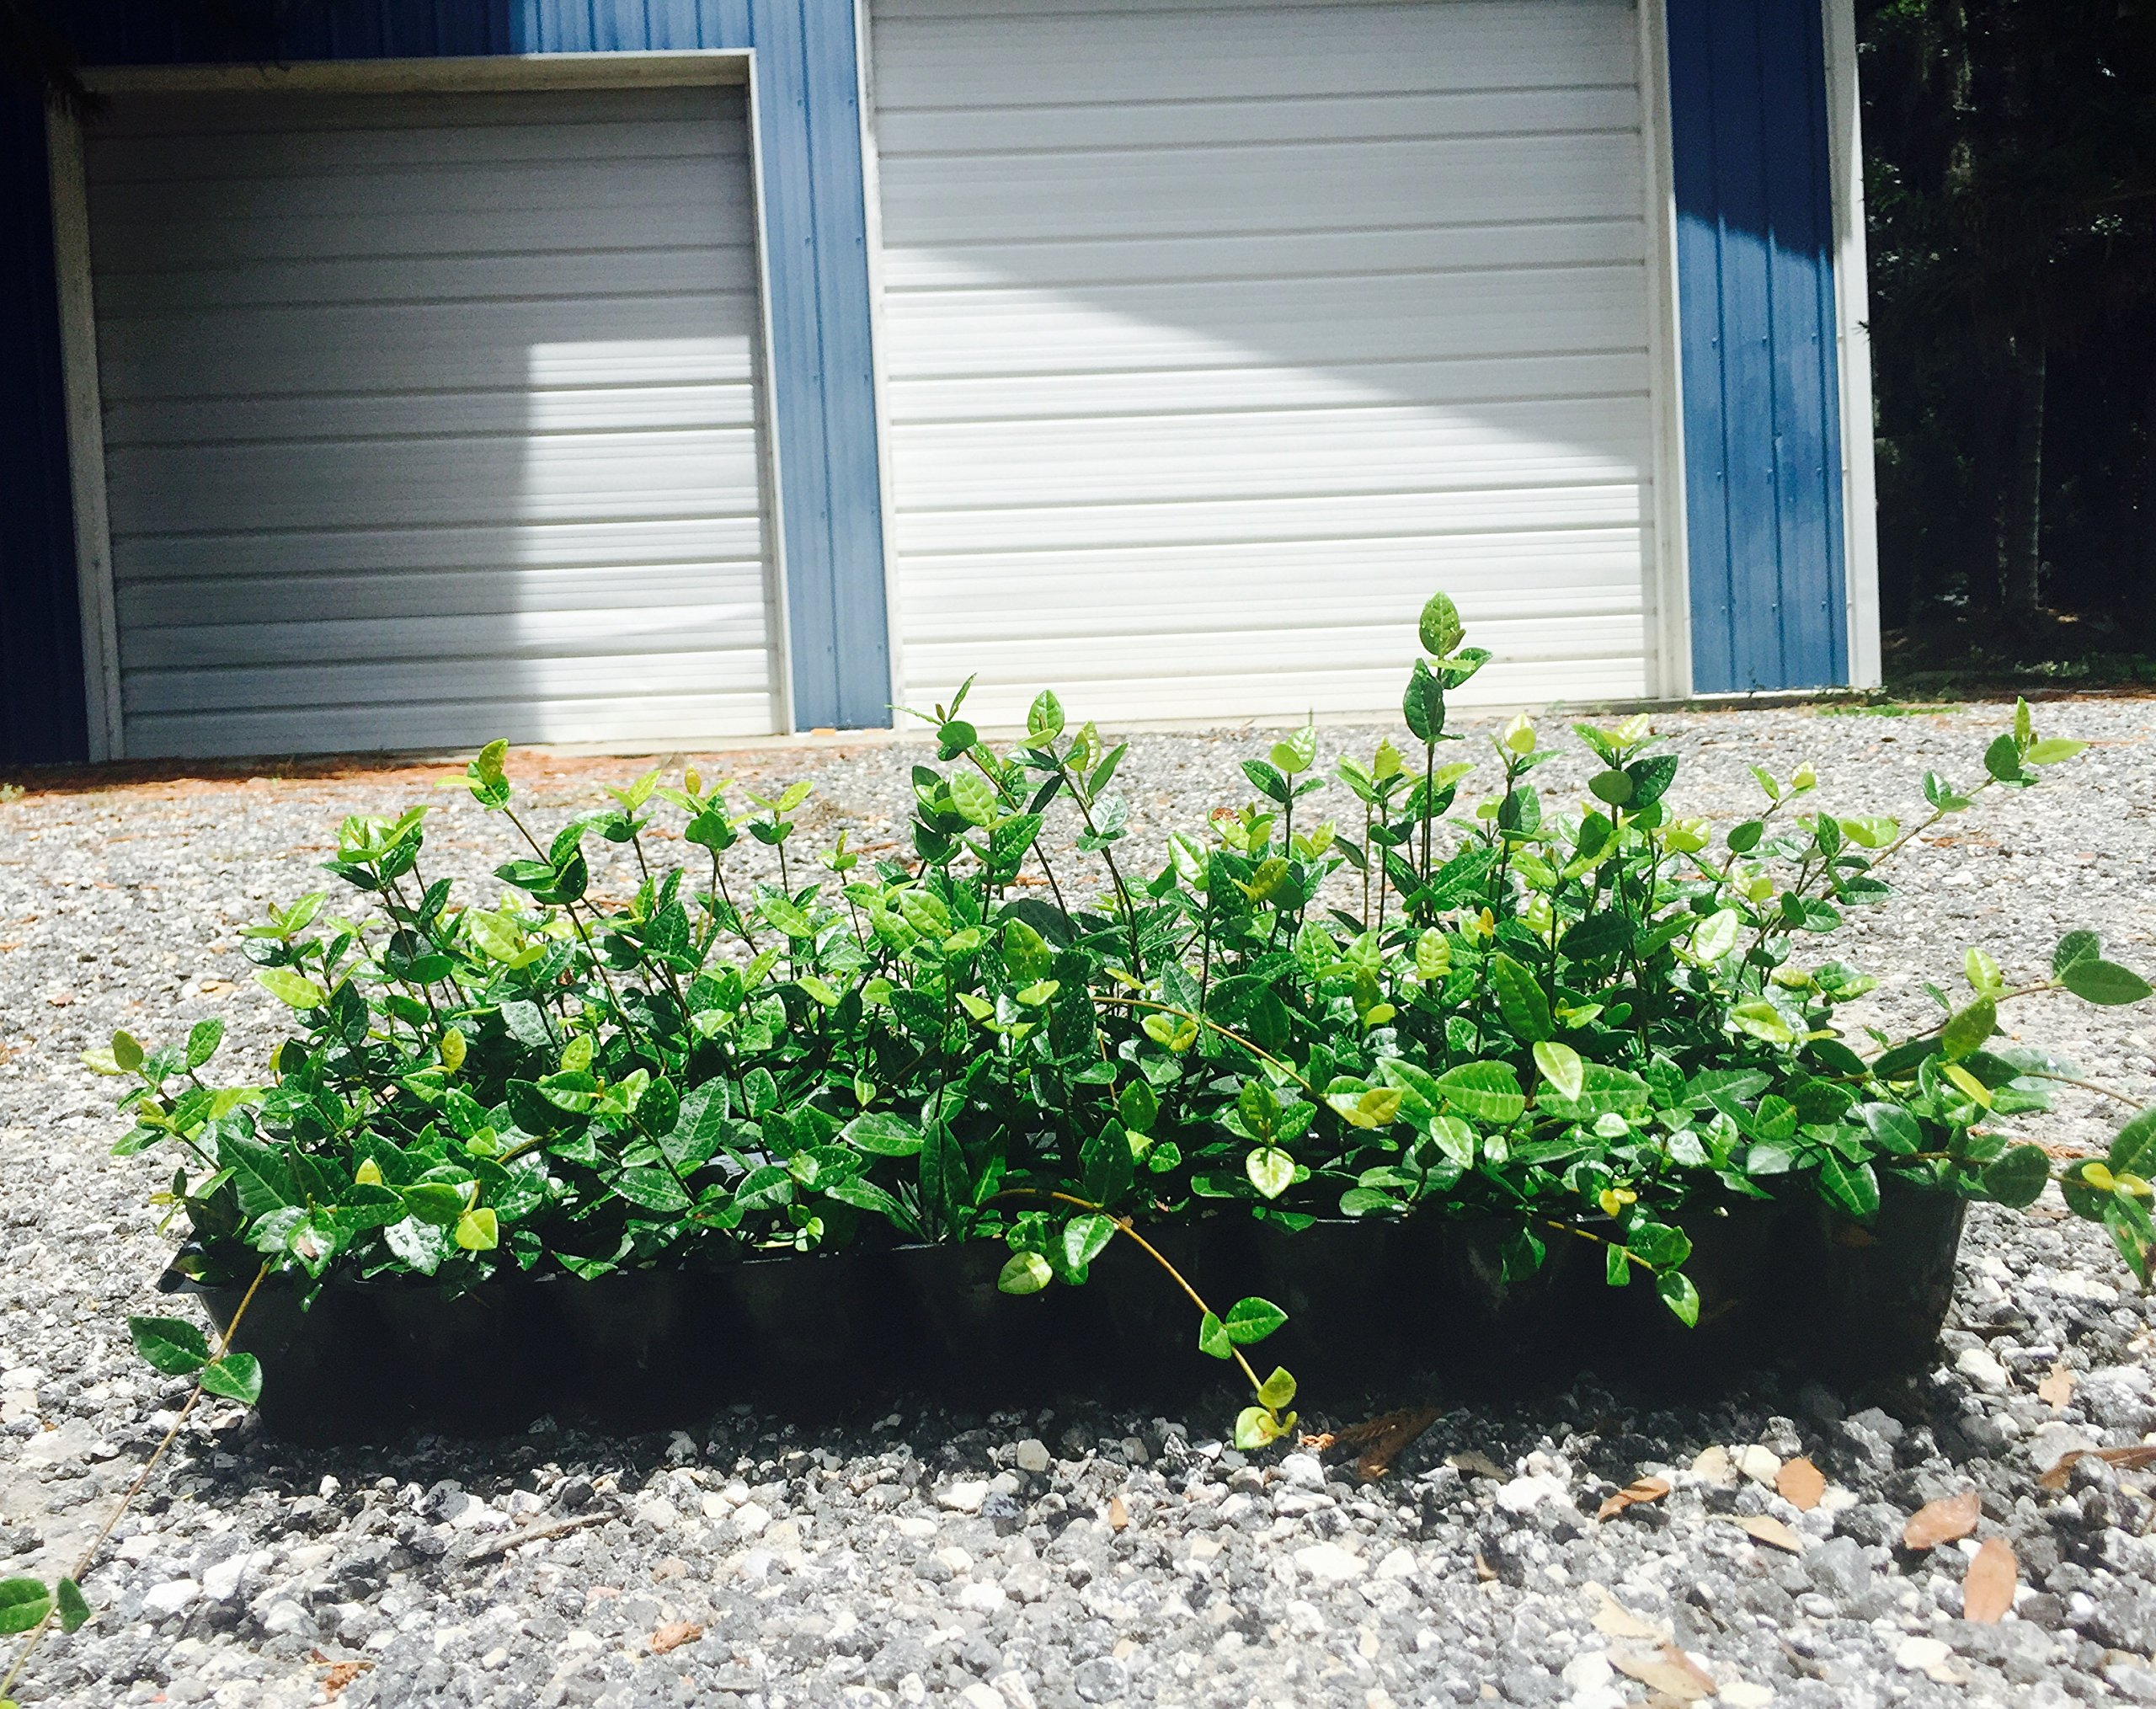 Asiatic Jasmine Minima Qty 60 Live Plants Asian Groundcover (Fully Rooted With Soil) by Florida Foliage